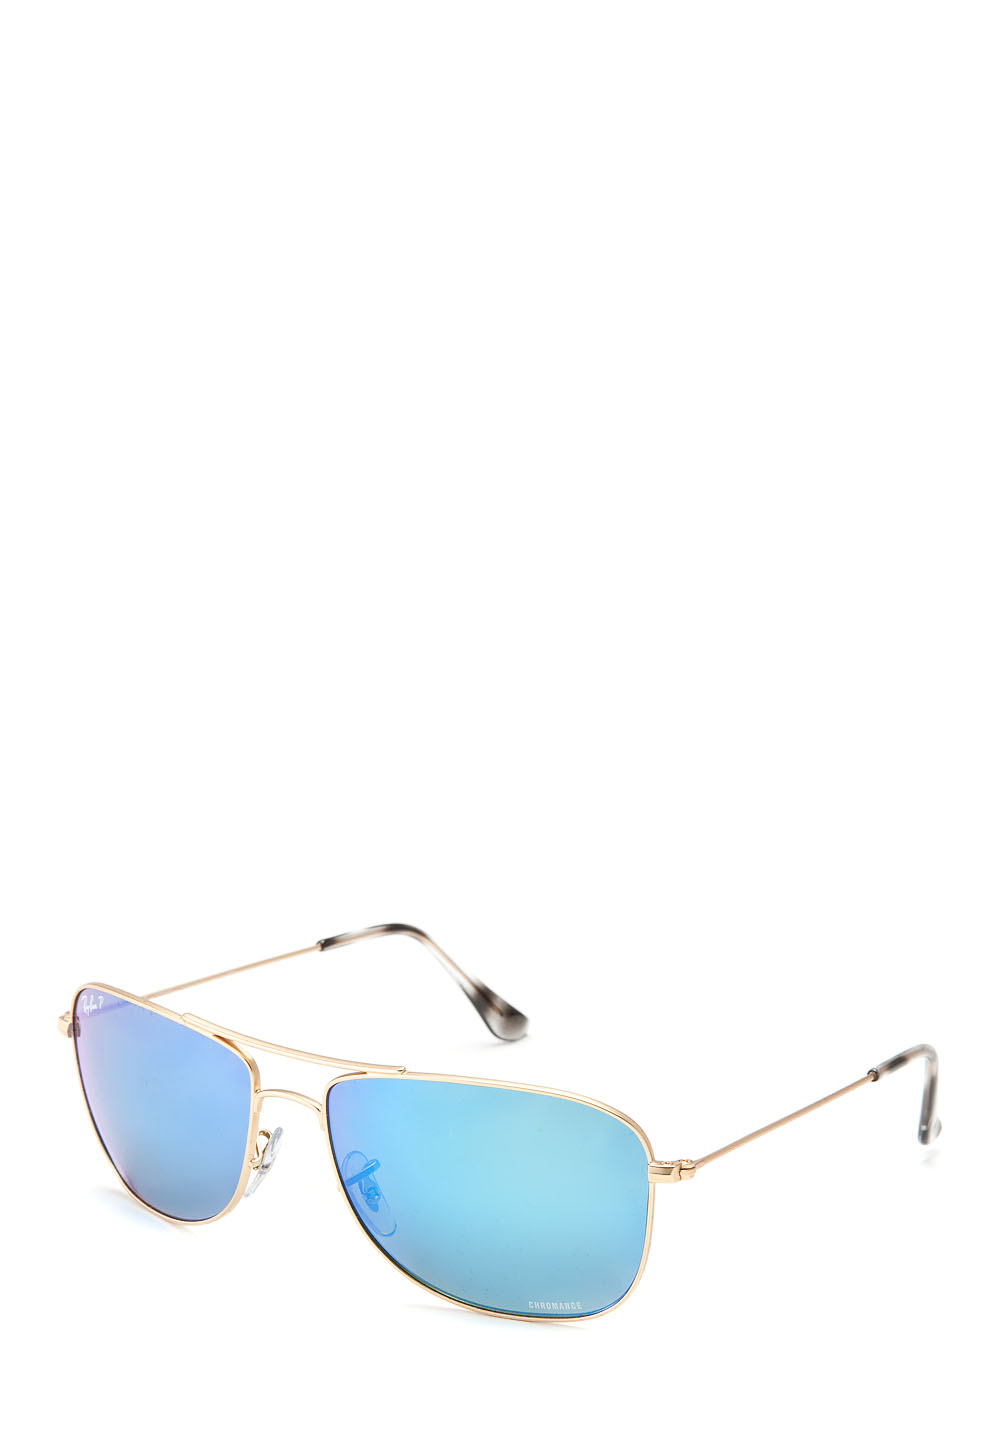 Sonnenbrille Rb3543, polarized, UV 400, gold